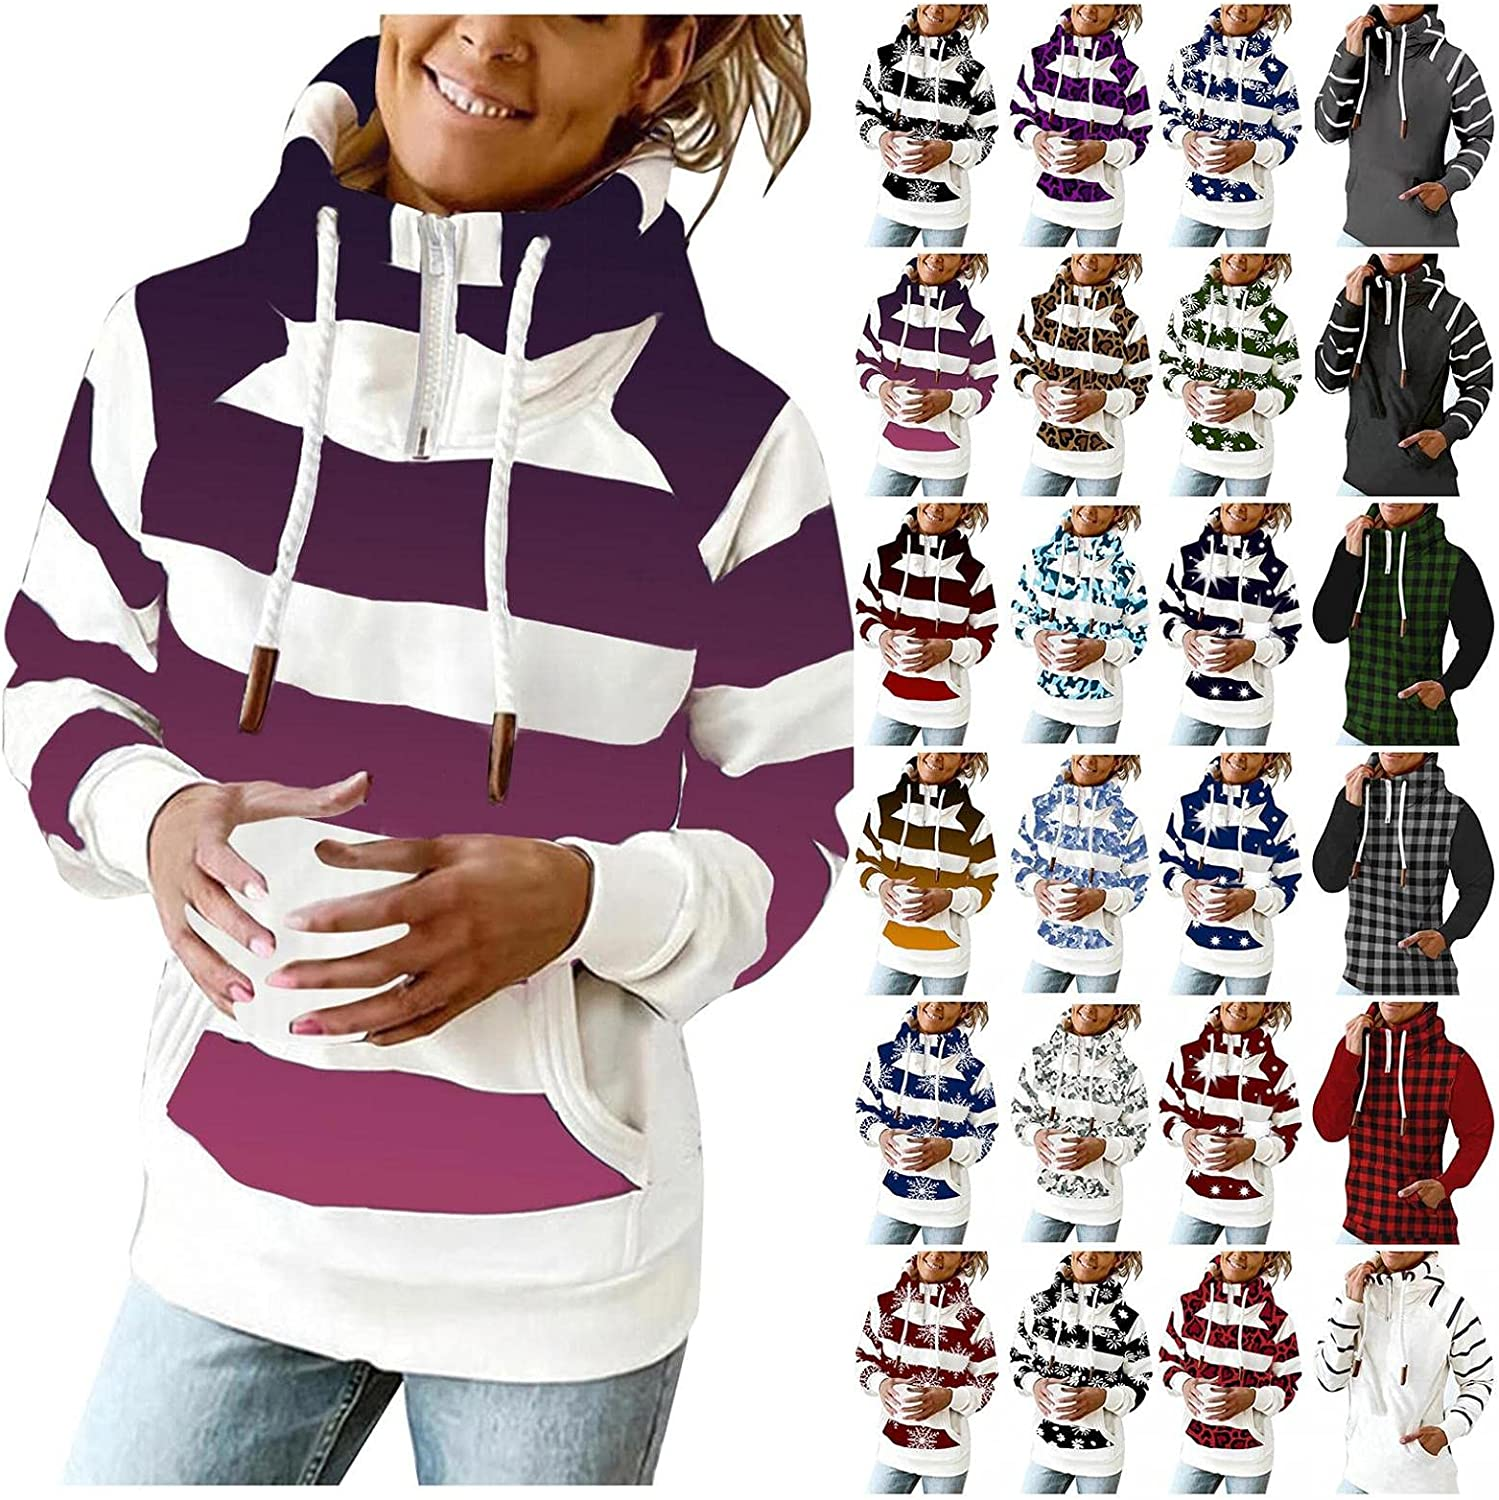 AODONG Hoodies for Women Zip Up Fashion Striped Hooded Pullover Tops Lightweight Long Sleeves Sweatshirts